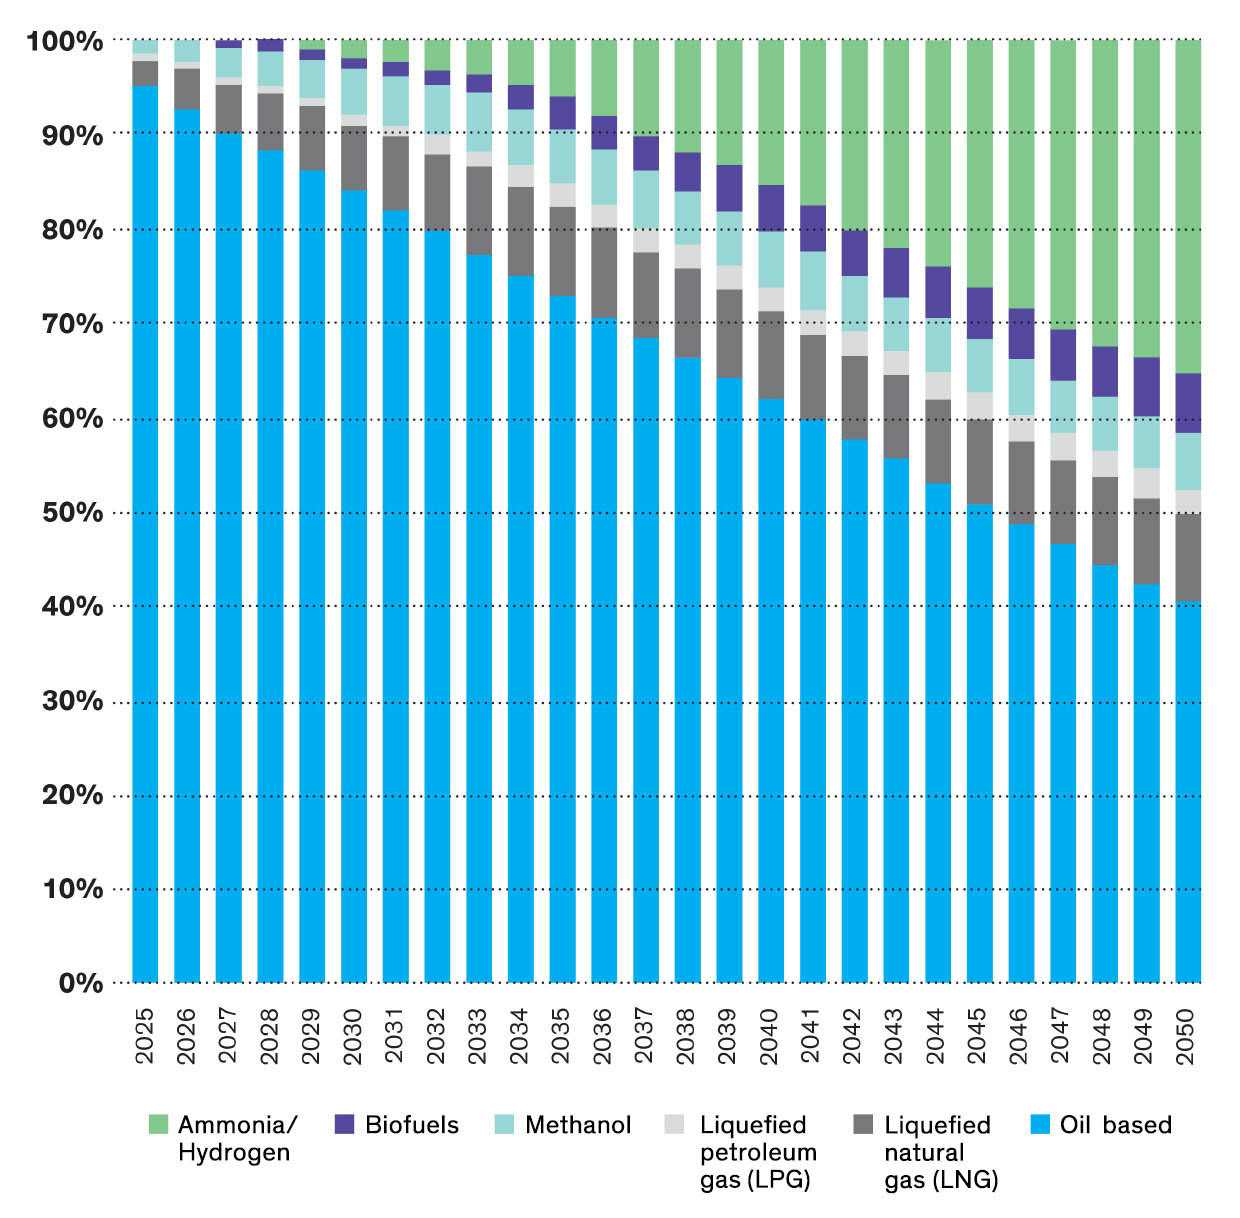 Chart for the Projected Marine Fuel Use to 2050